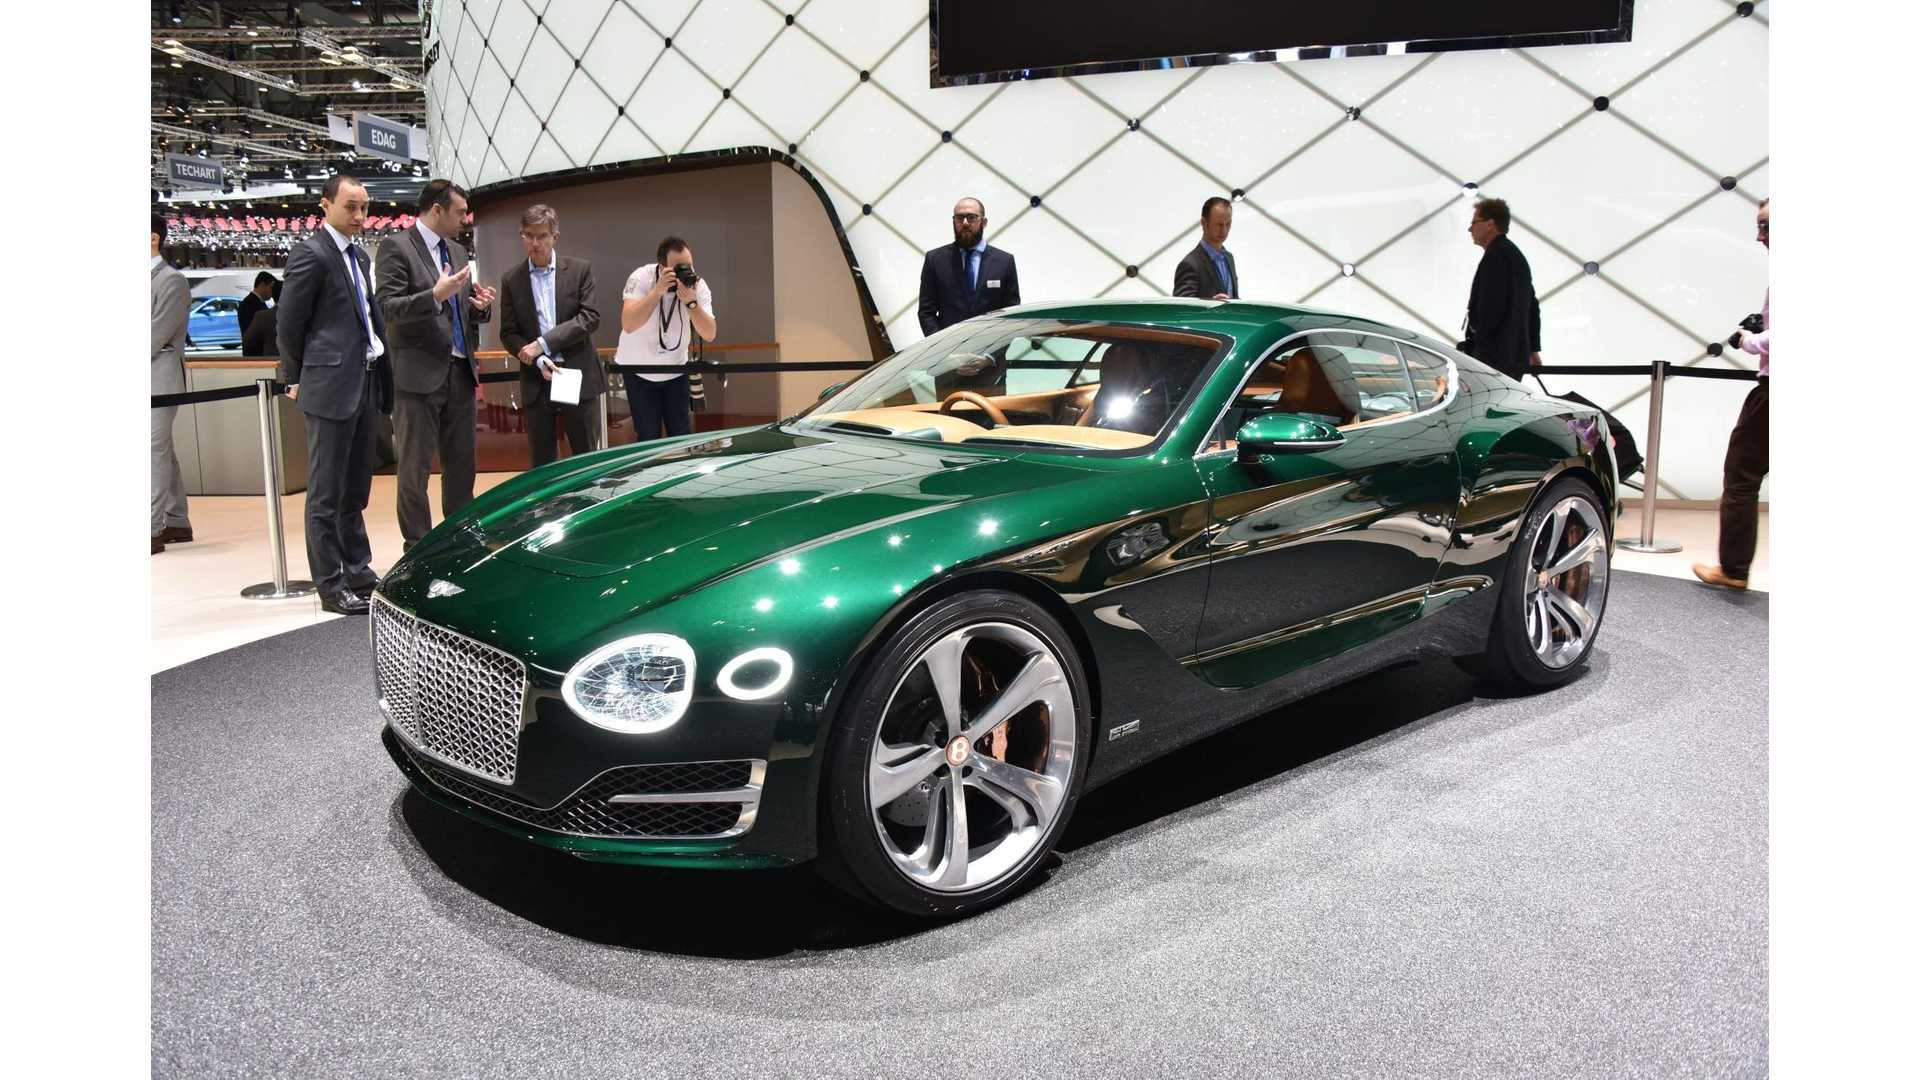 72 All New Bentley Bis 2020 Concept